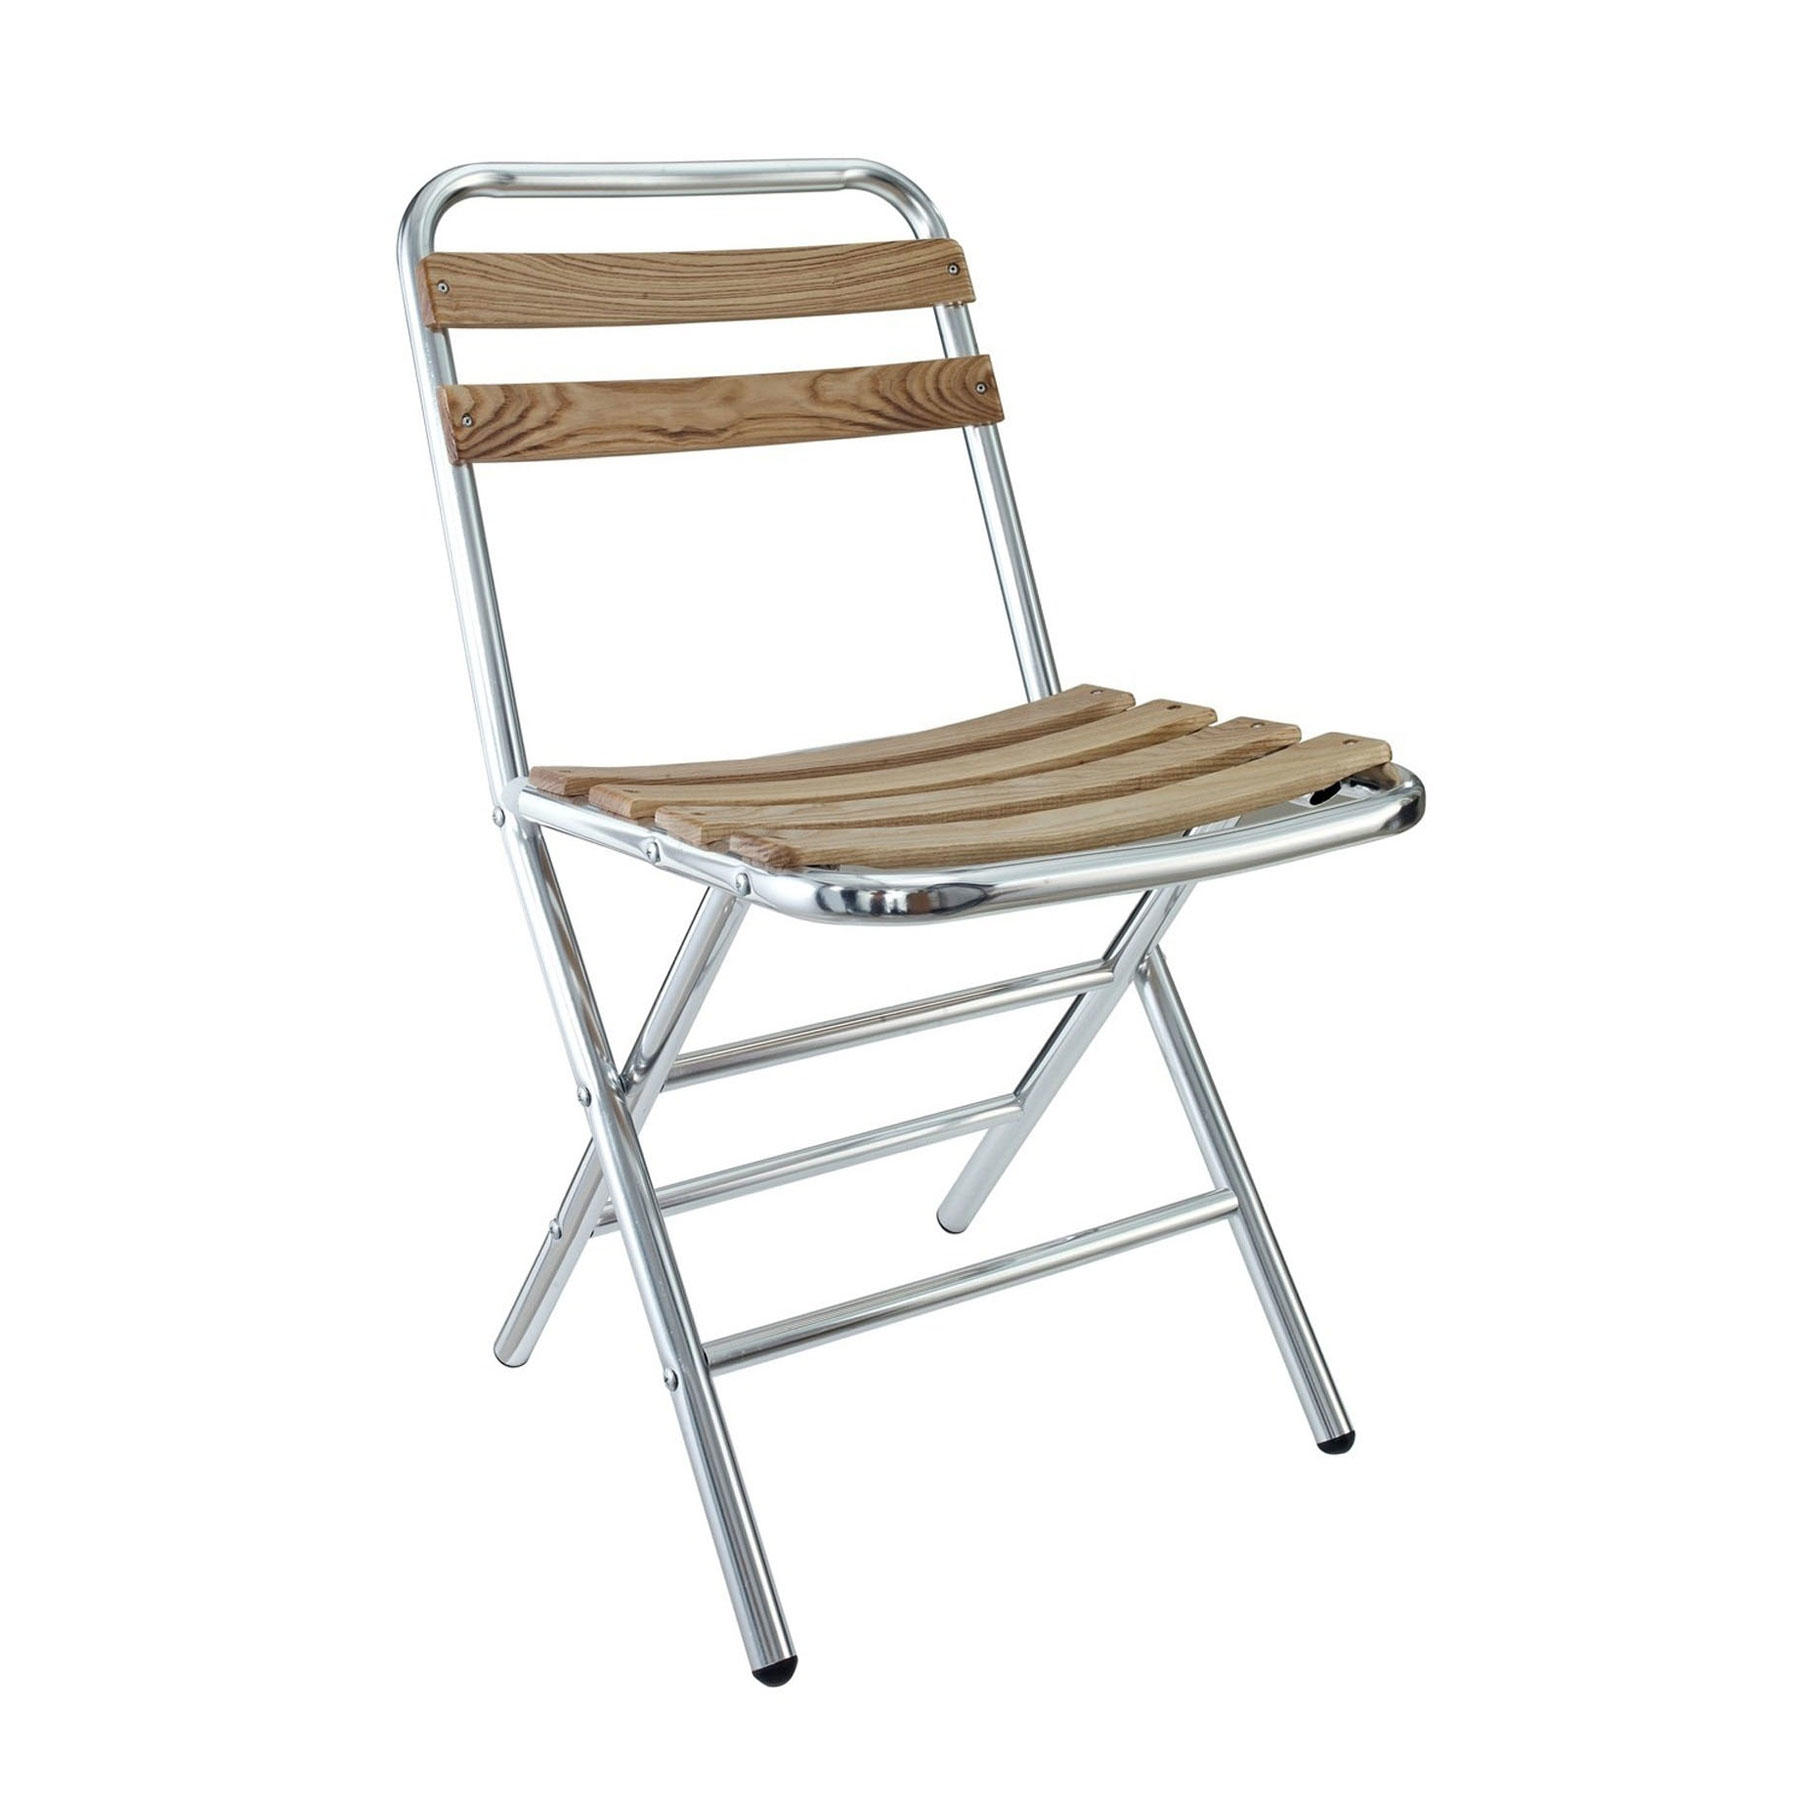 New School Folding Chair from Dot & Bo